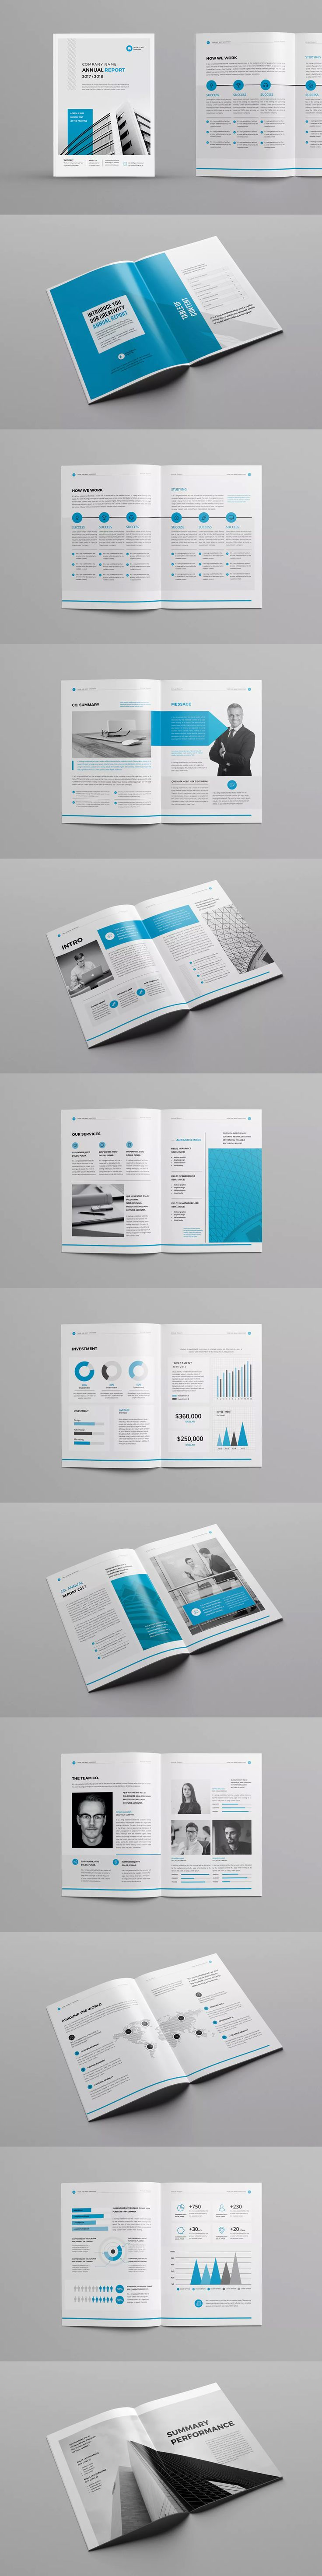 Best Annual Report Templates Images On   Annual